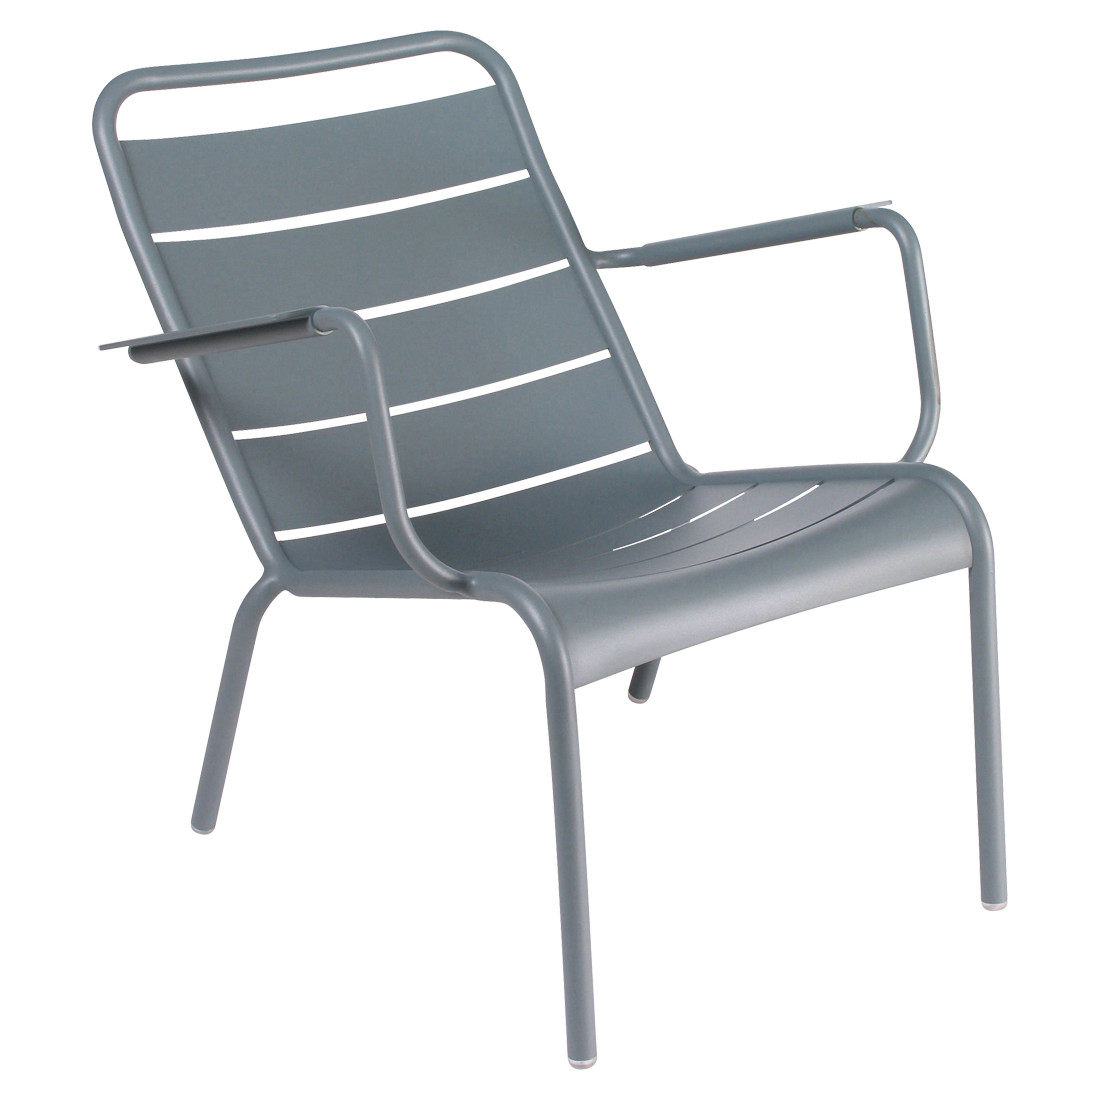 Fermob Luxembourg Low Armchair By Frederic Sofia 2003 Designer